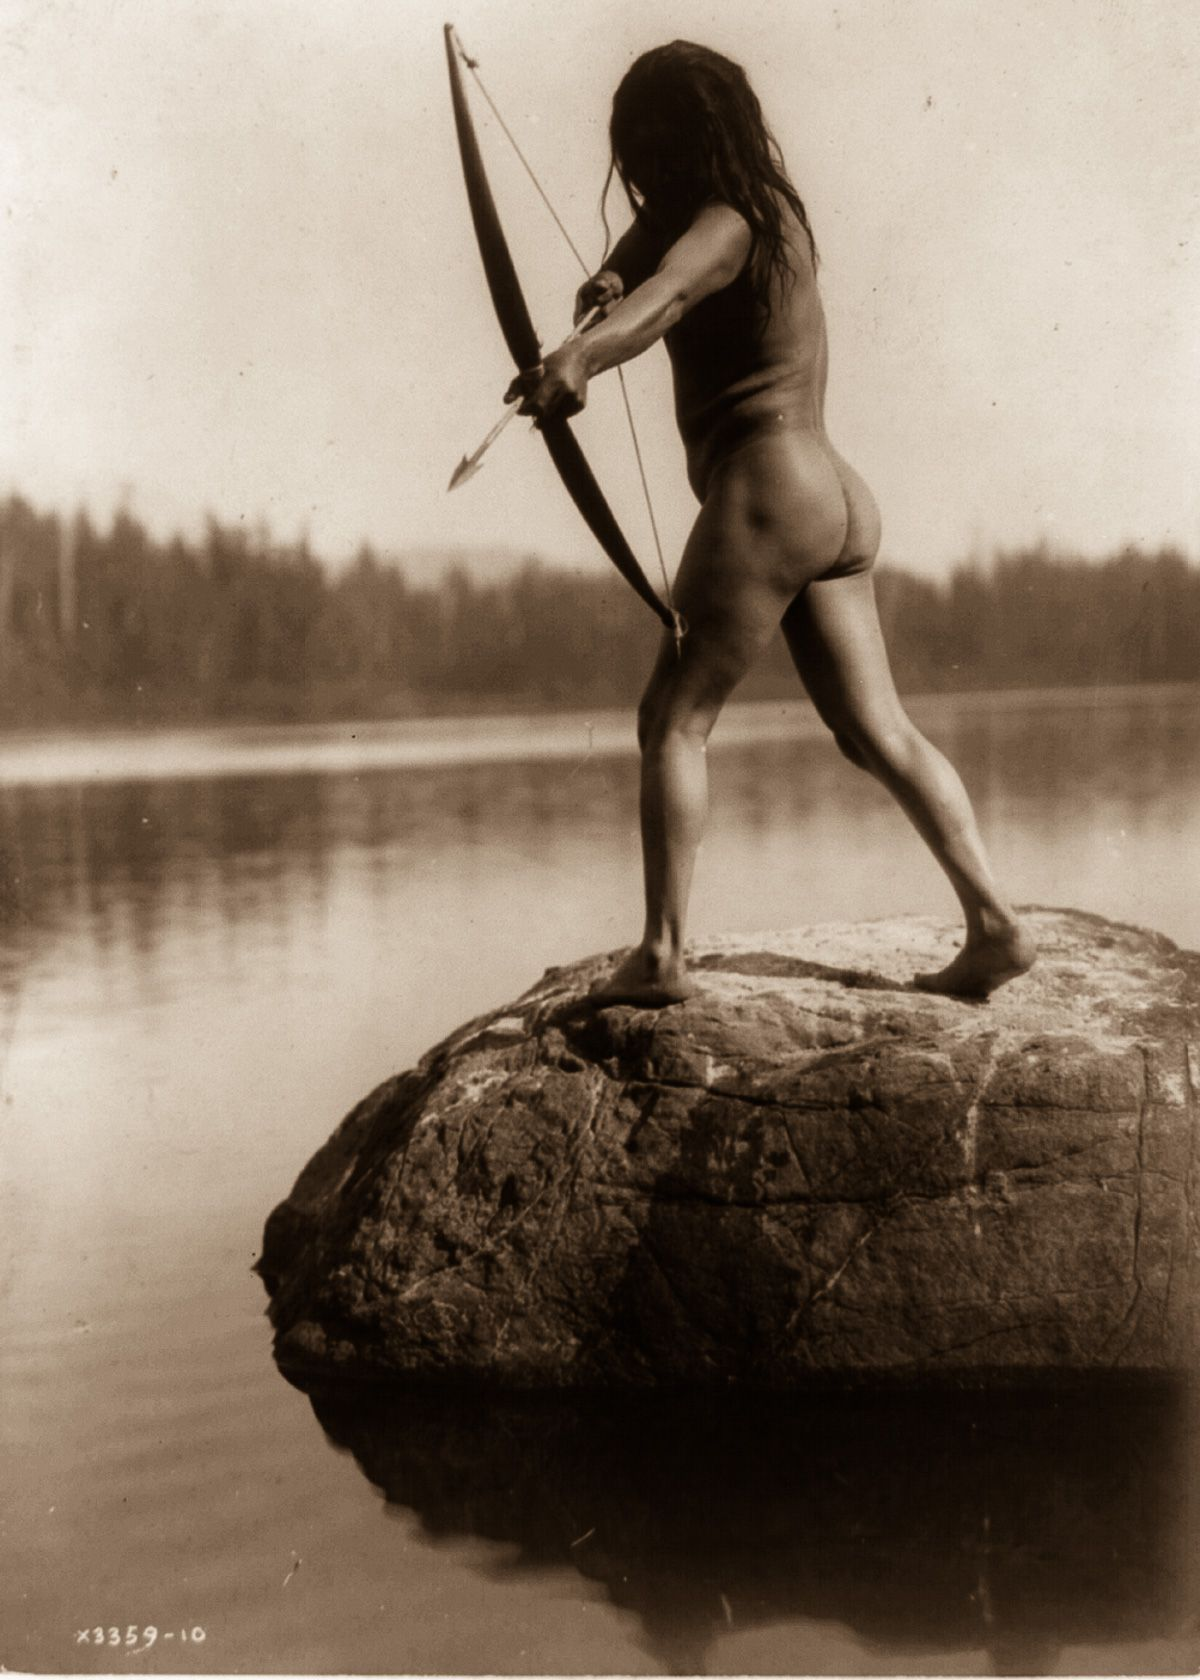 A Nootka man aims a bow and arrow,  1910.  ©EDWARD S. CURTIS/LIBRARY OF CONGRESS